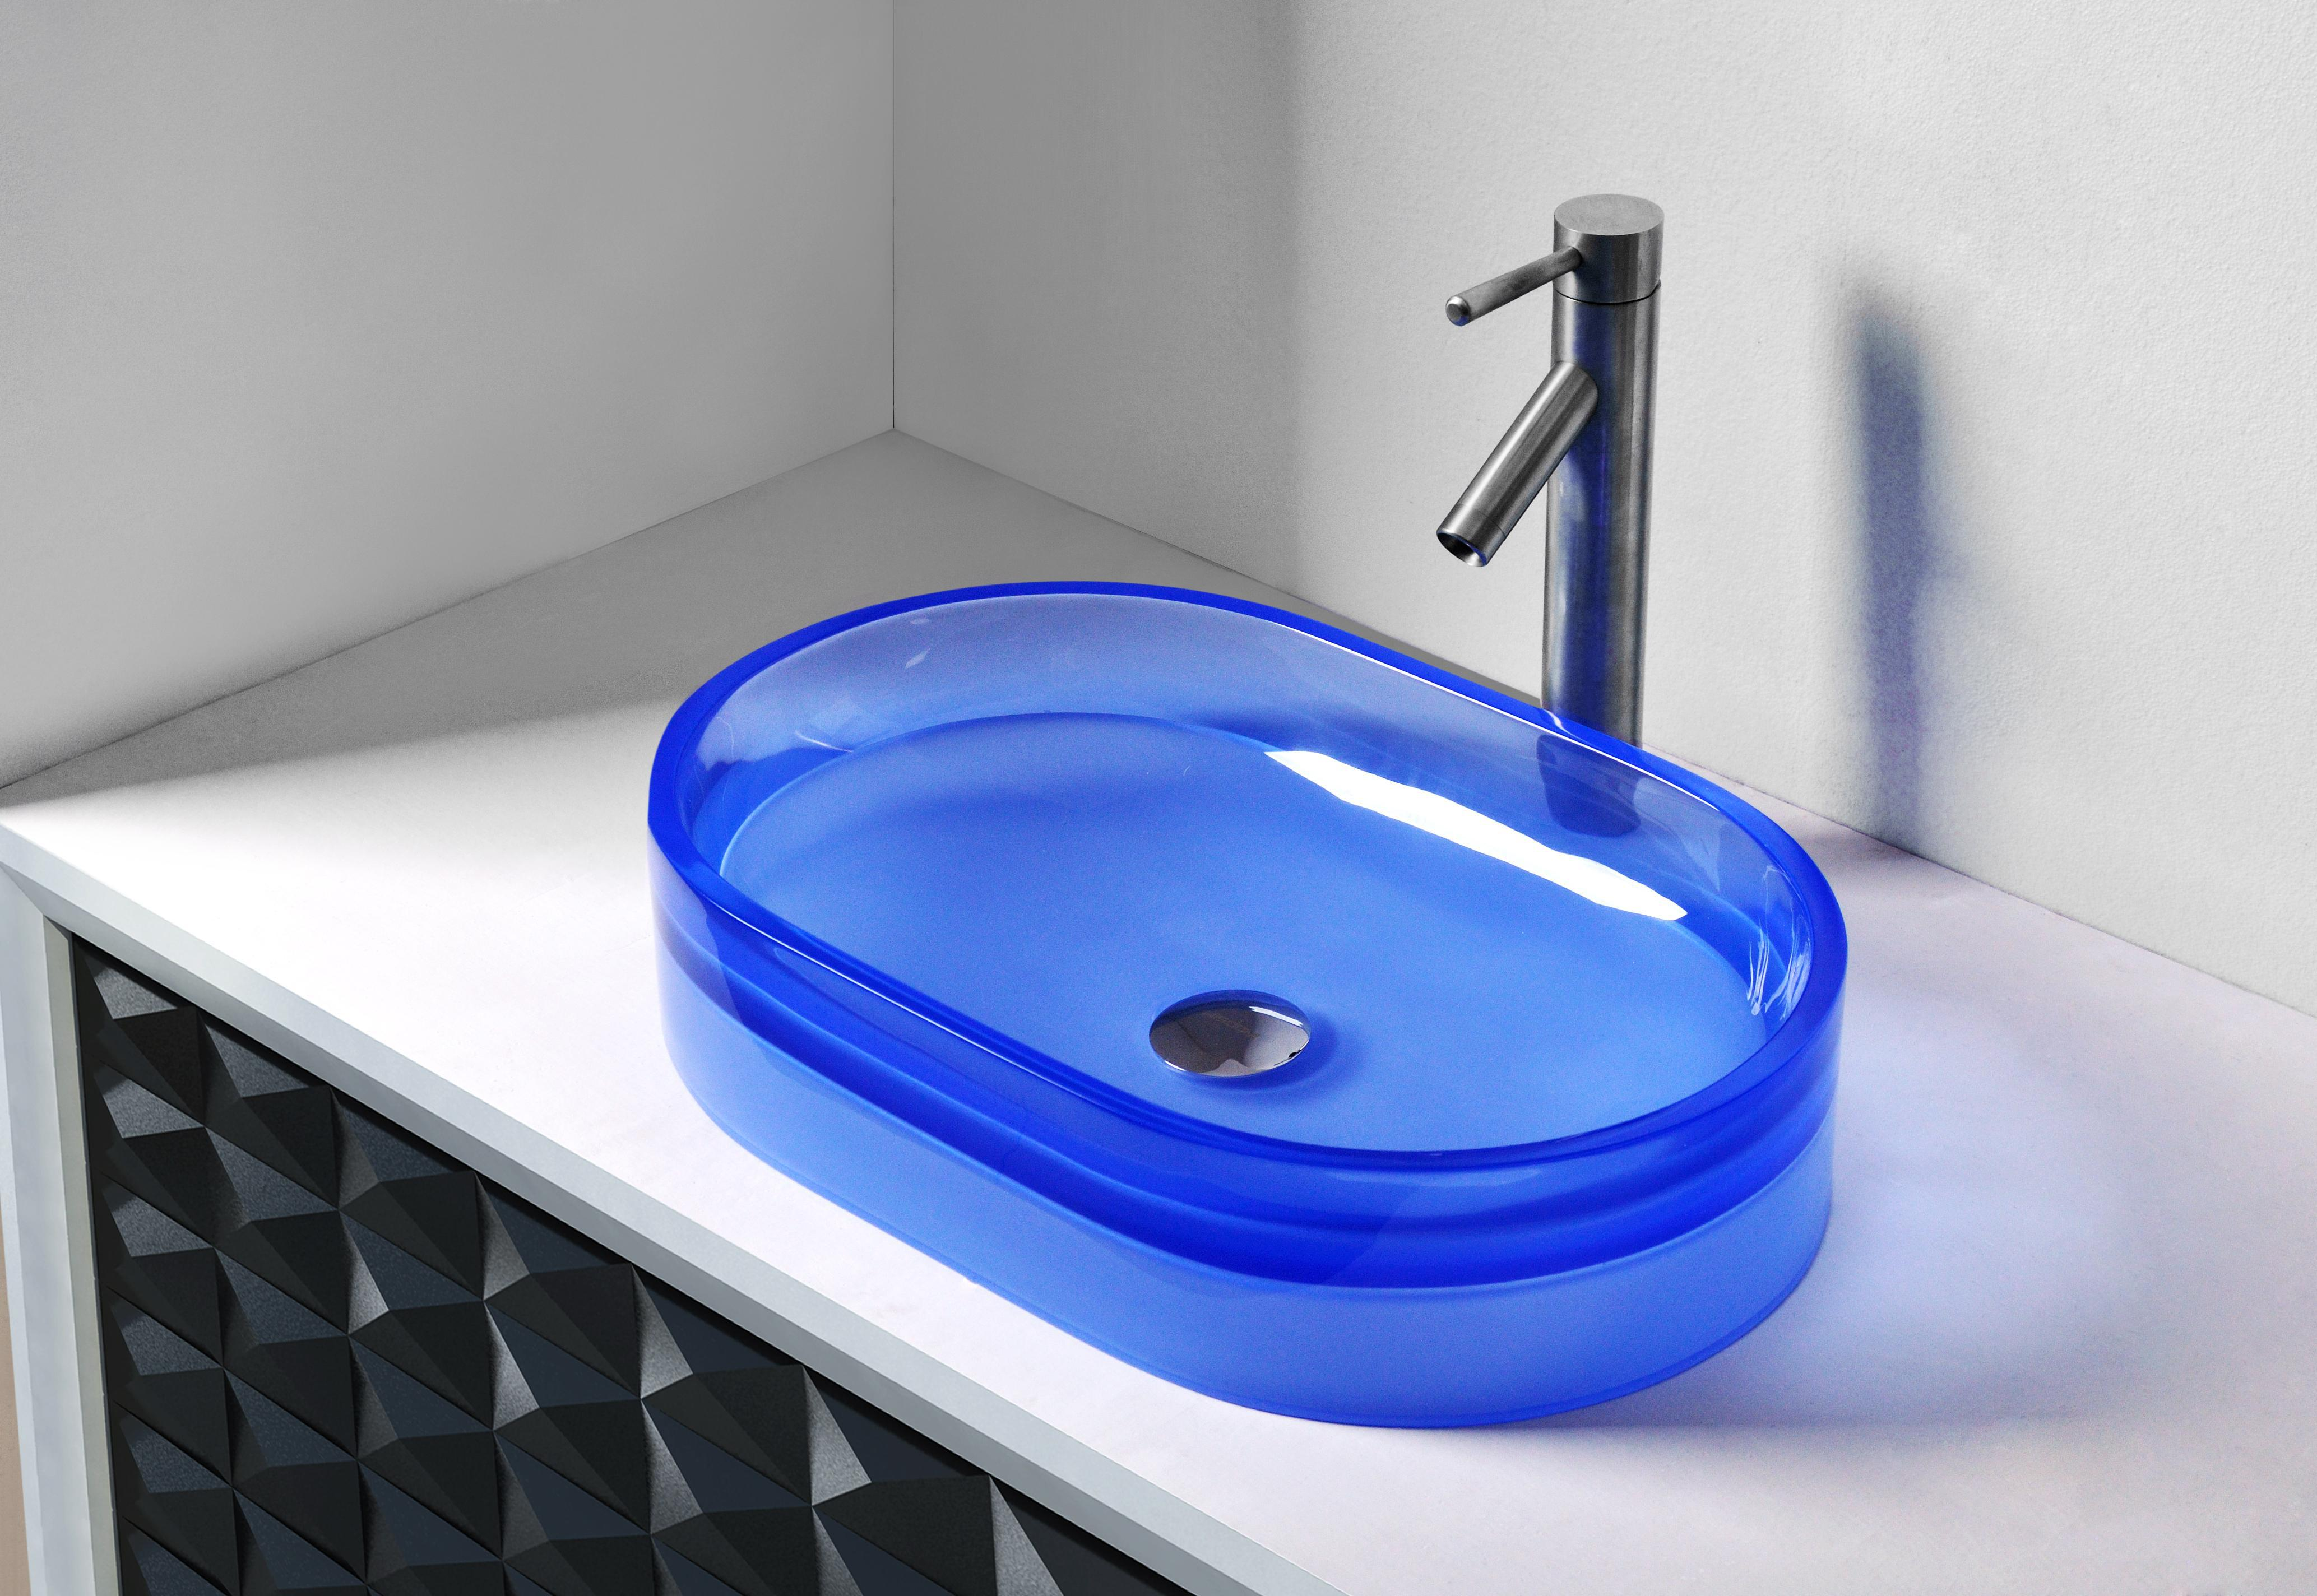 CUPC Certificate Bathroom Resin Oval Counter Top Sink Colourful Cloakroom Wash Basin Solid Surface Stone Vessel Sinks RS38279